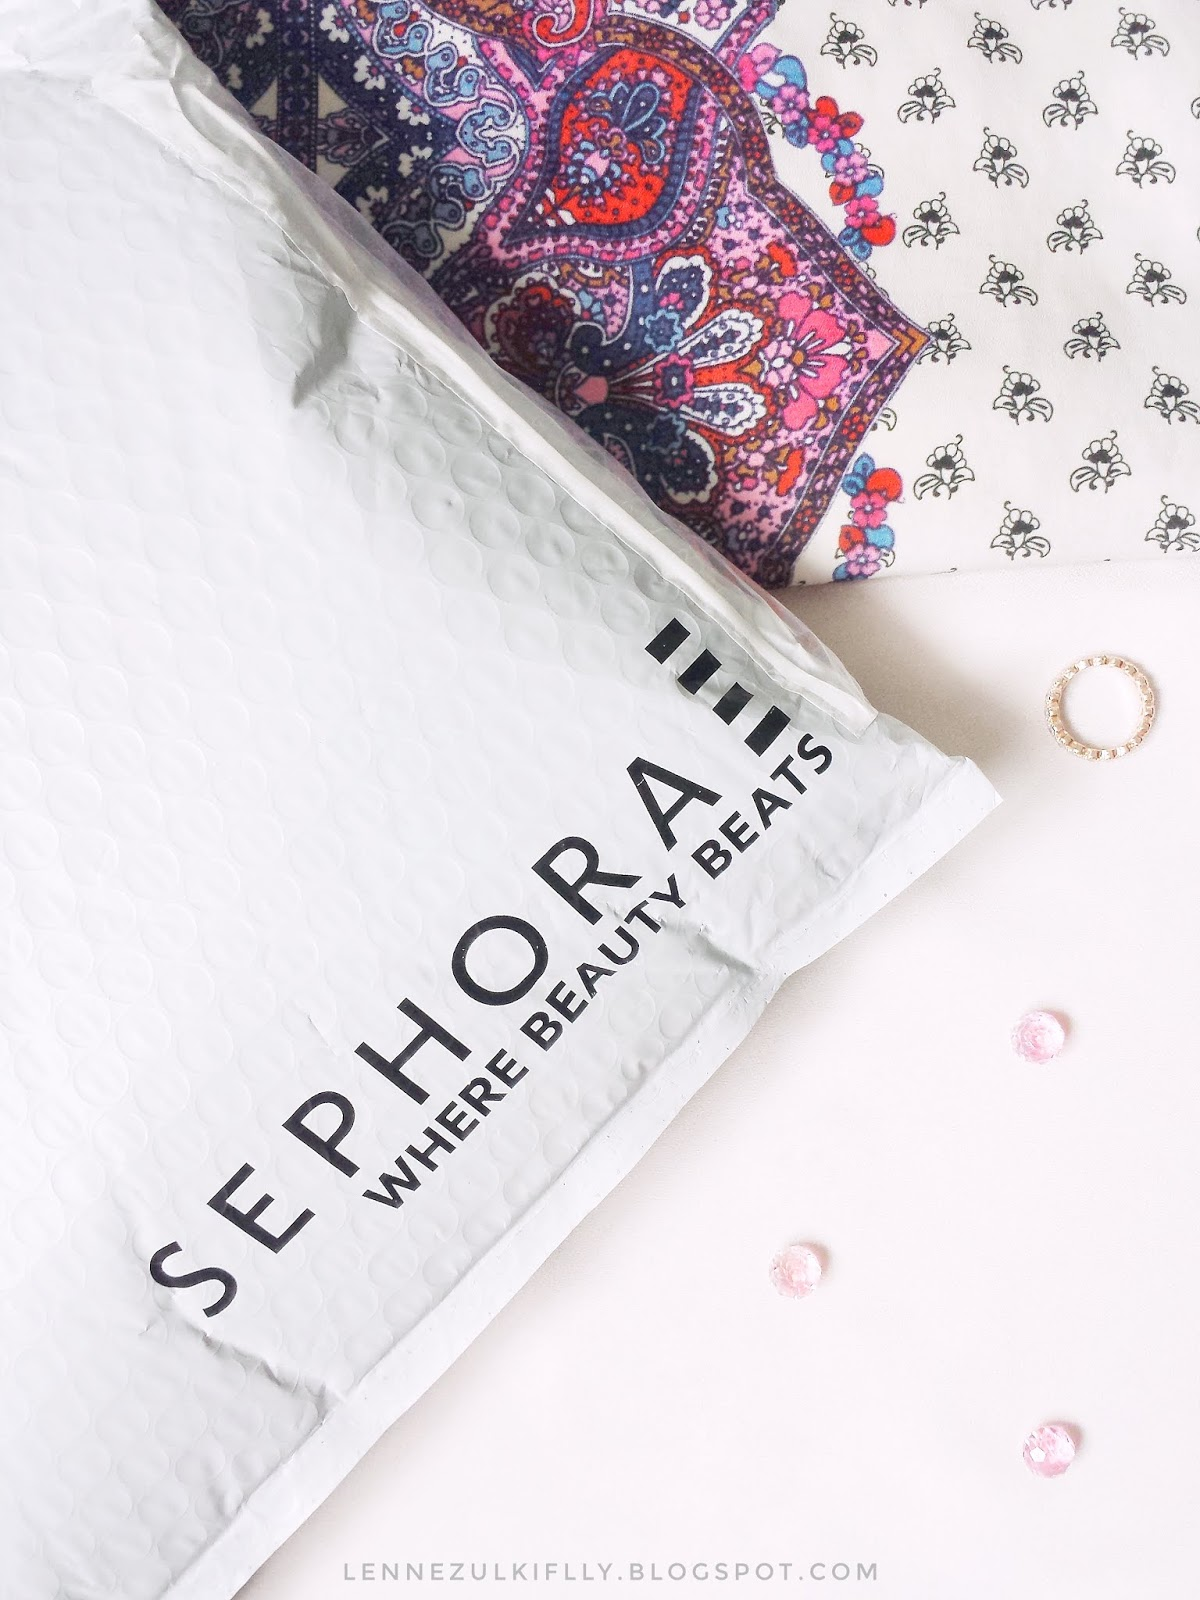 My Sephora Package Has Arrived! | LENNE ZULKIFLLY